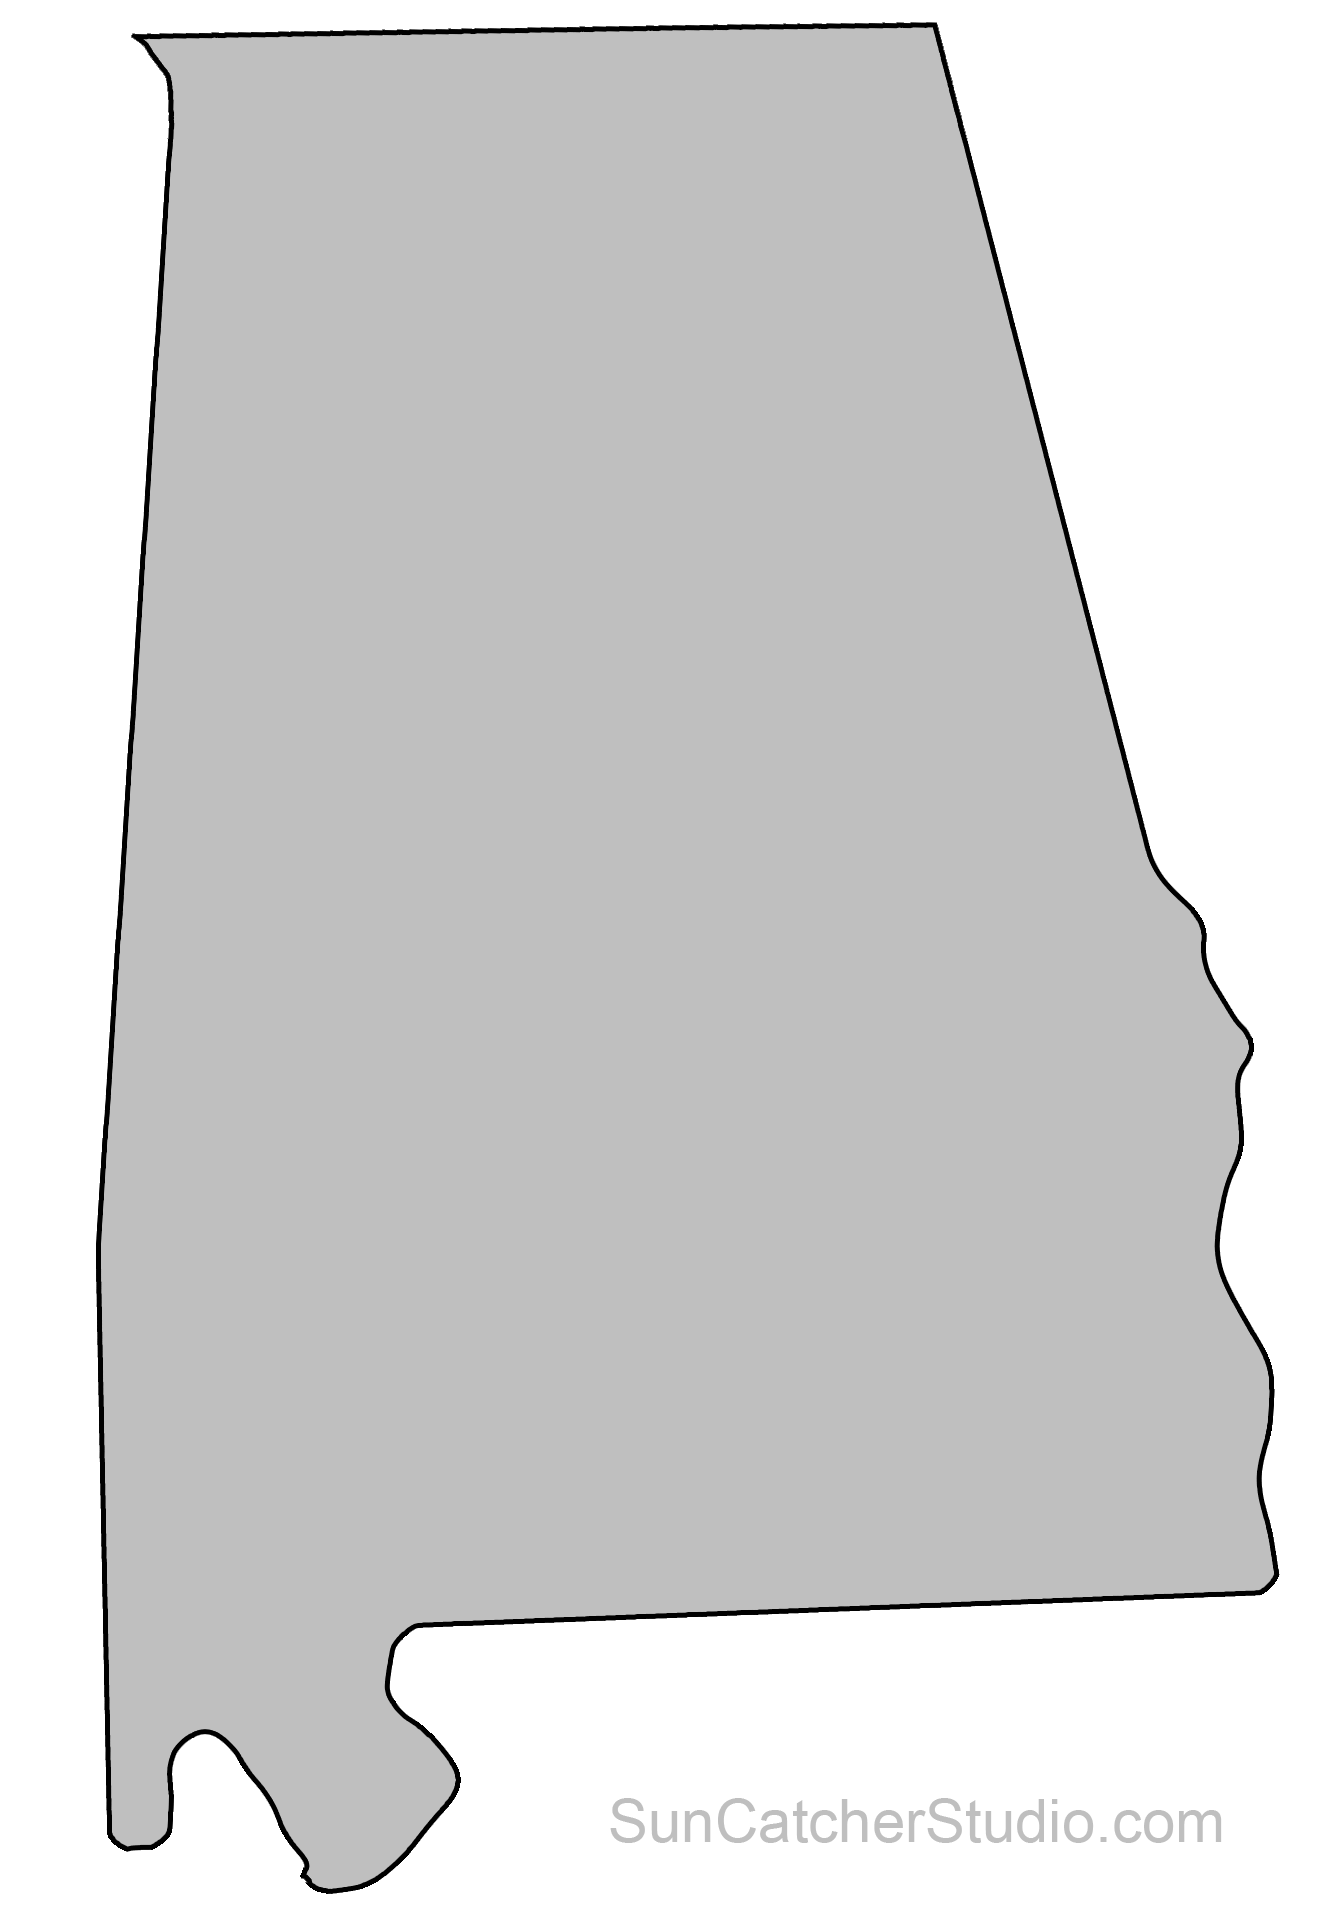 clipart freeuse State outlines maps stencils. Alabama clipart shape.